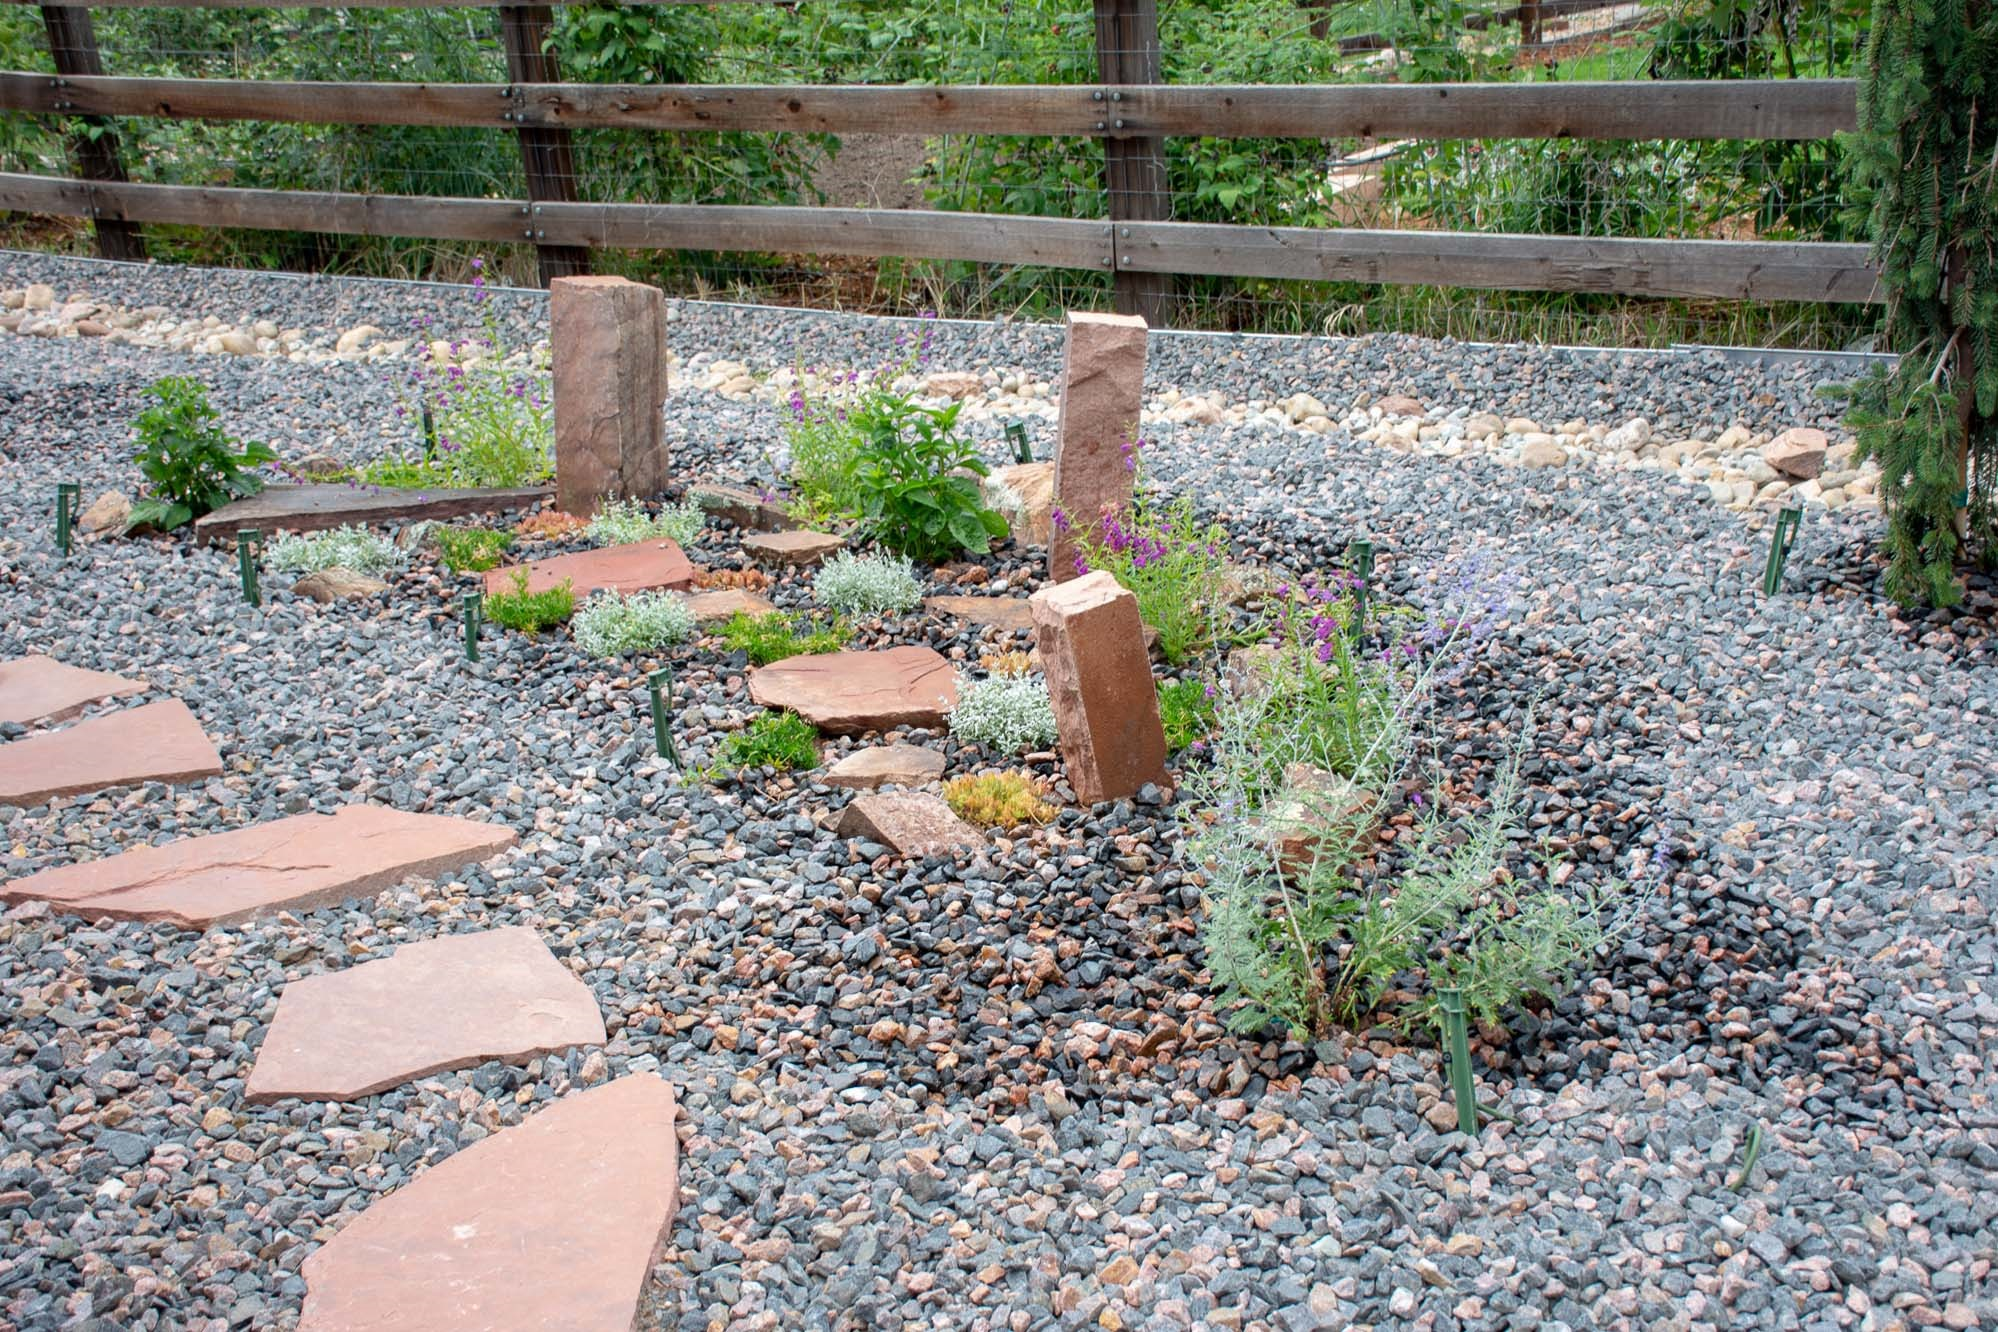 Xeriscape/Natural landscaping in Lyons, CO 2019